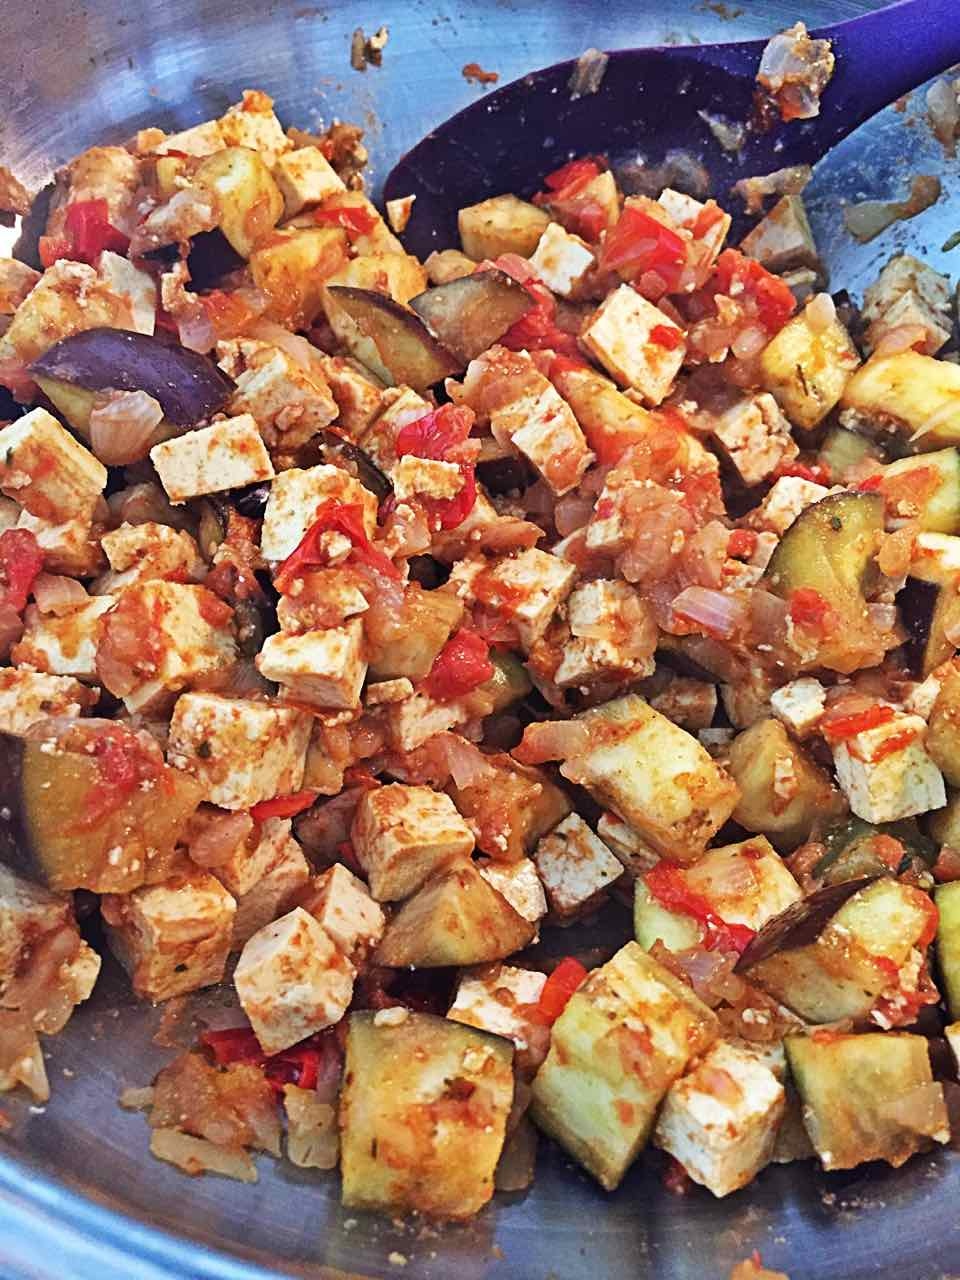 Image of the first steps of this vegan Indian spinach side dish recipe: tofu as a paneer substitute with cubed eggplant, onions, spices and fresh blended tomatoes.